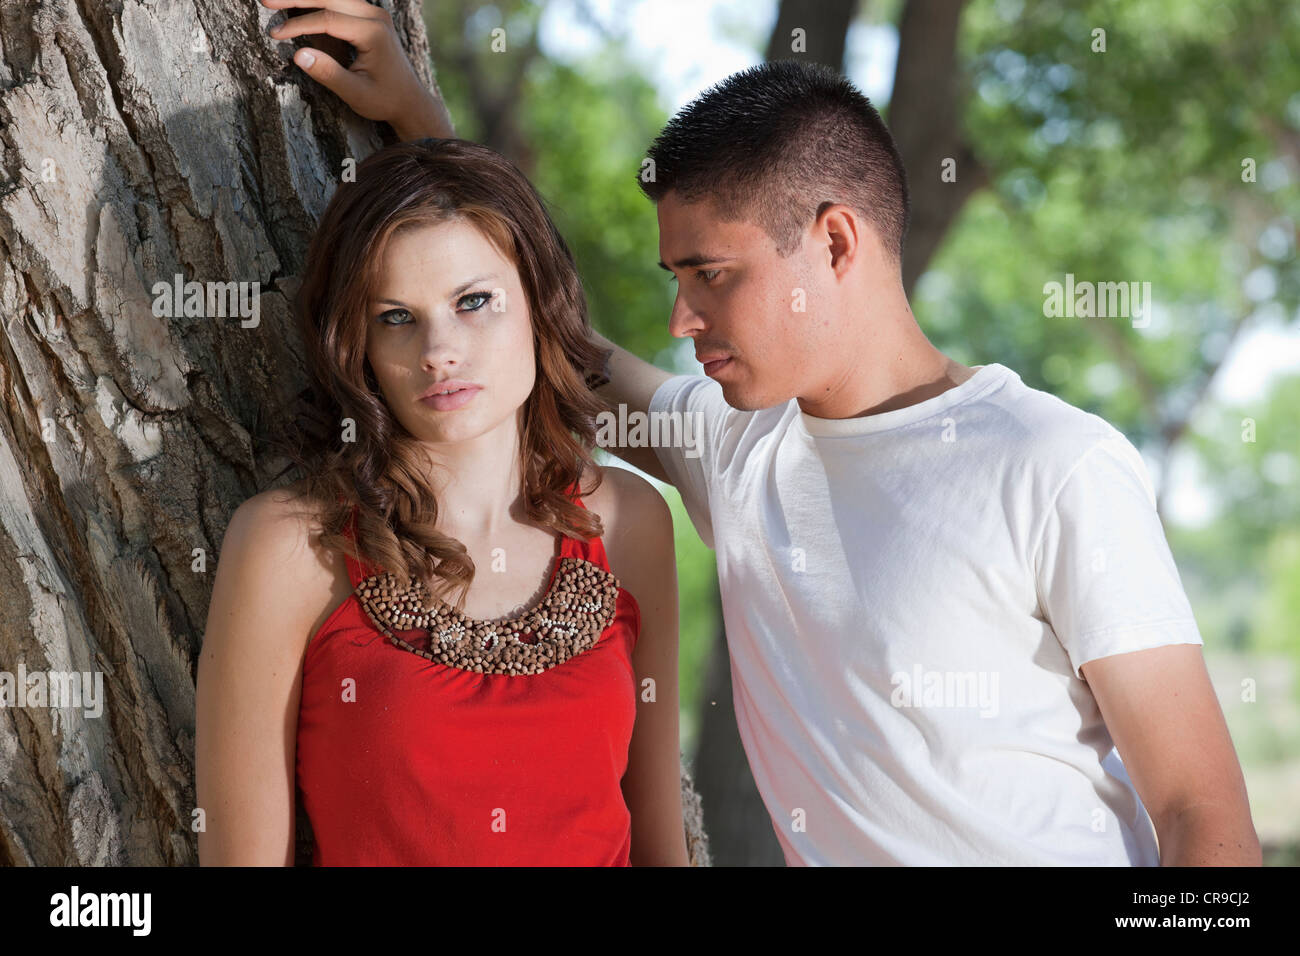 Handsome young couple standing in the woods on a bright sunny day, leaning against a tree. Stock Photo